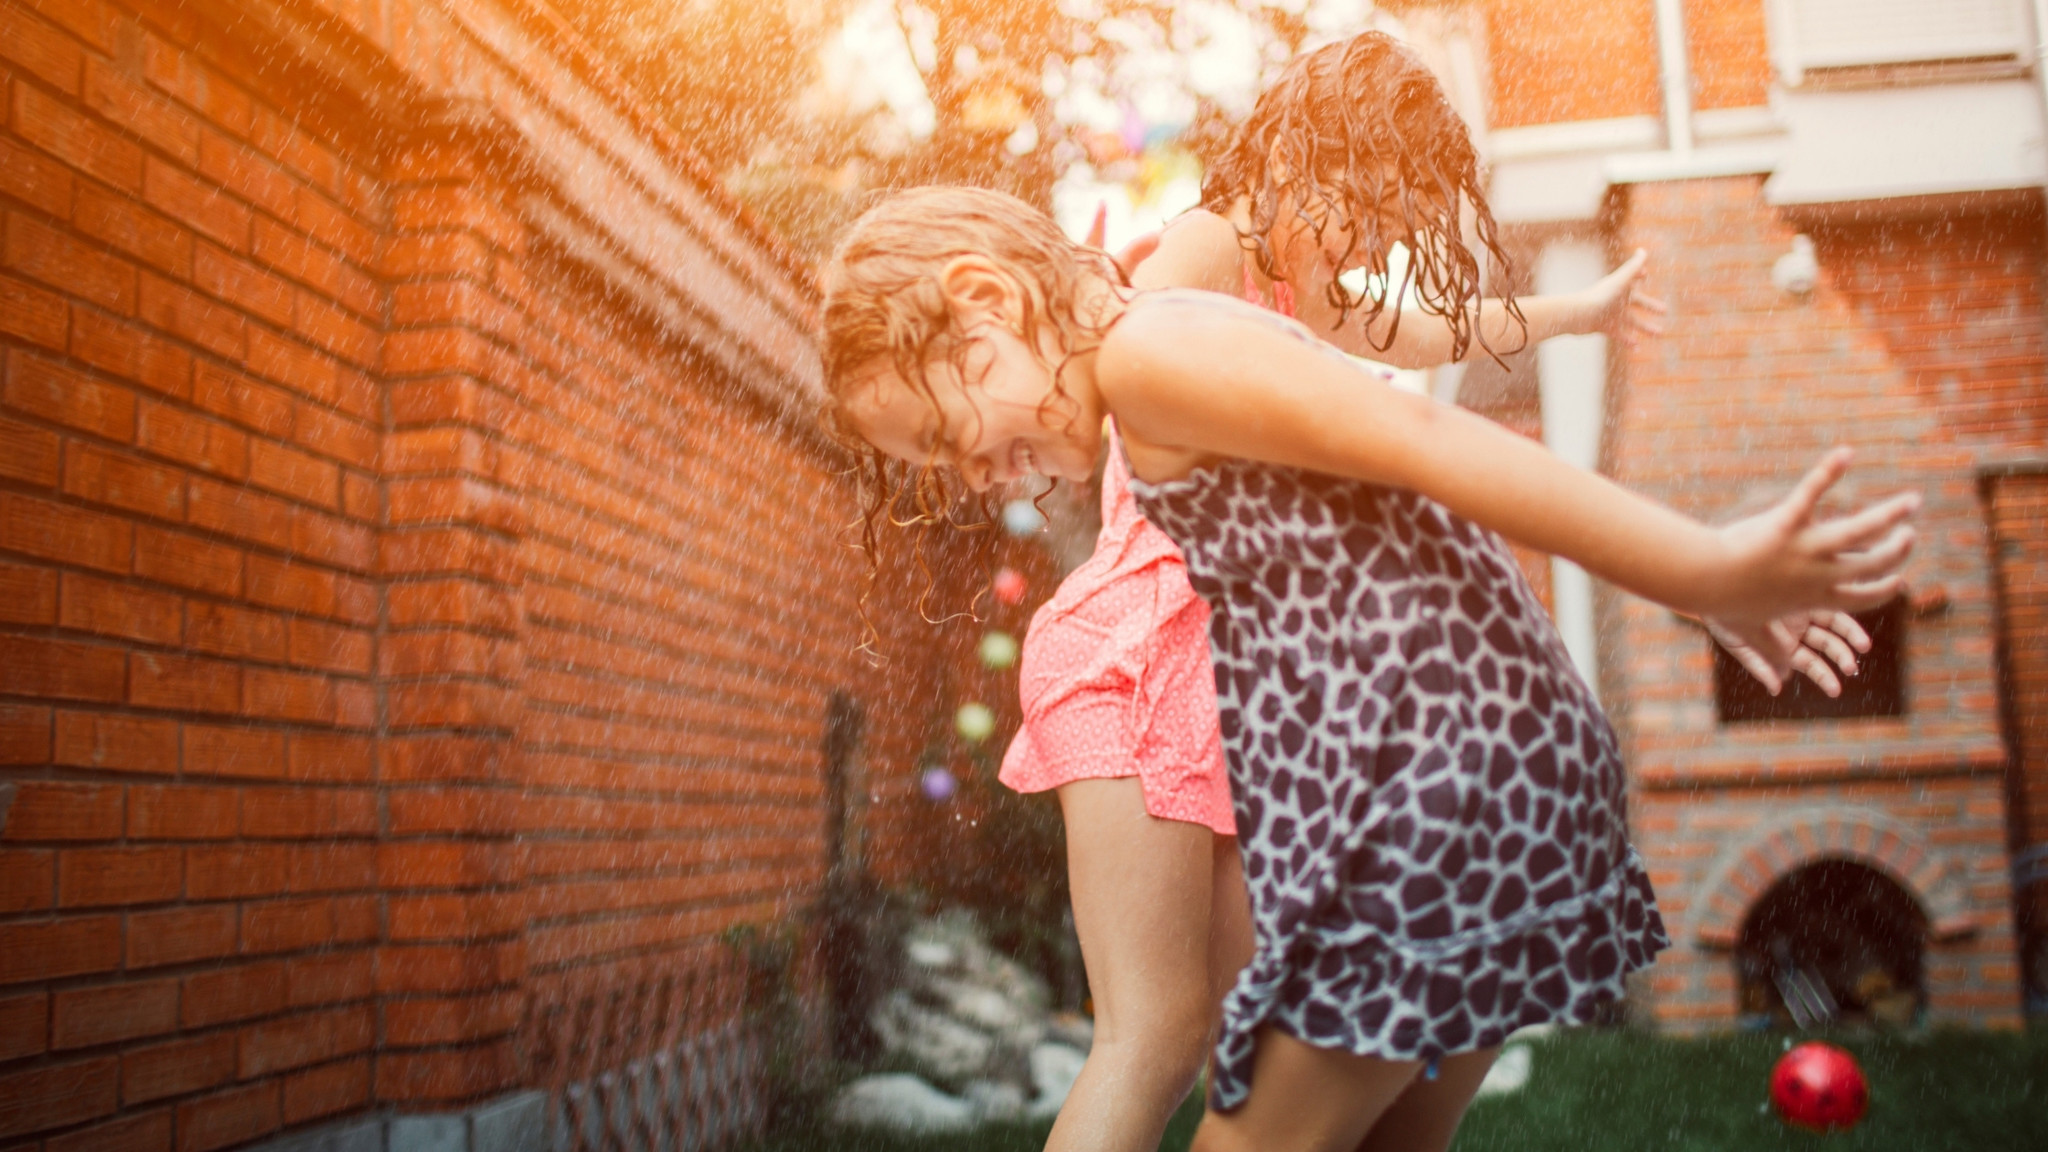 How to keep kids safe during summer - 5 tips and advice for outdoor fun.